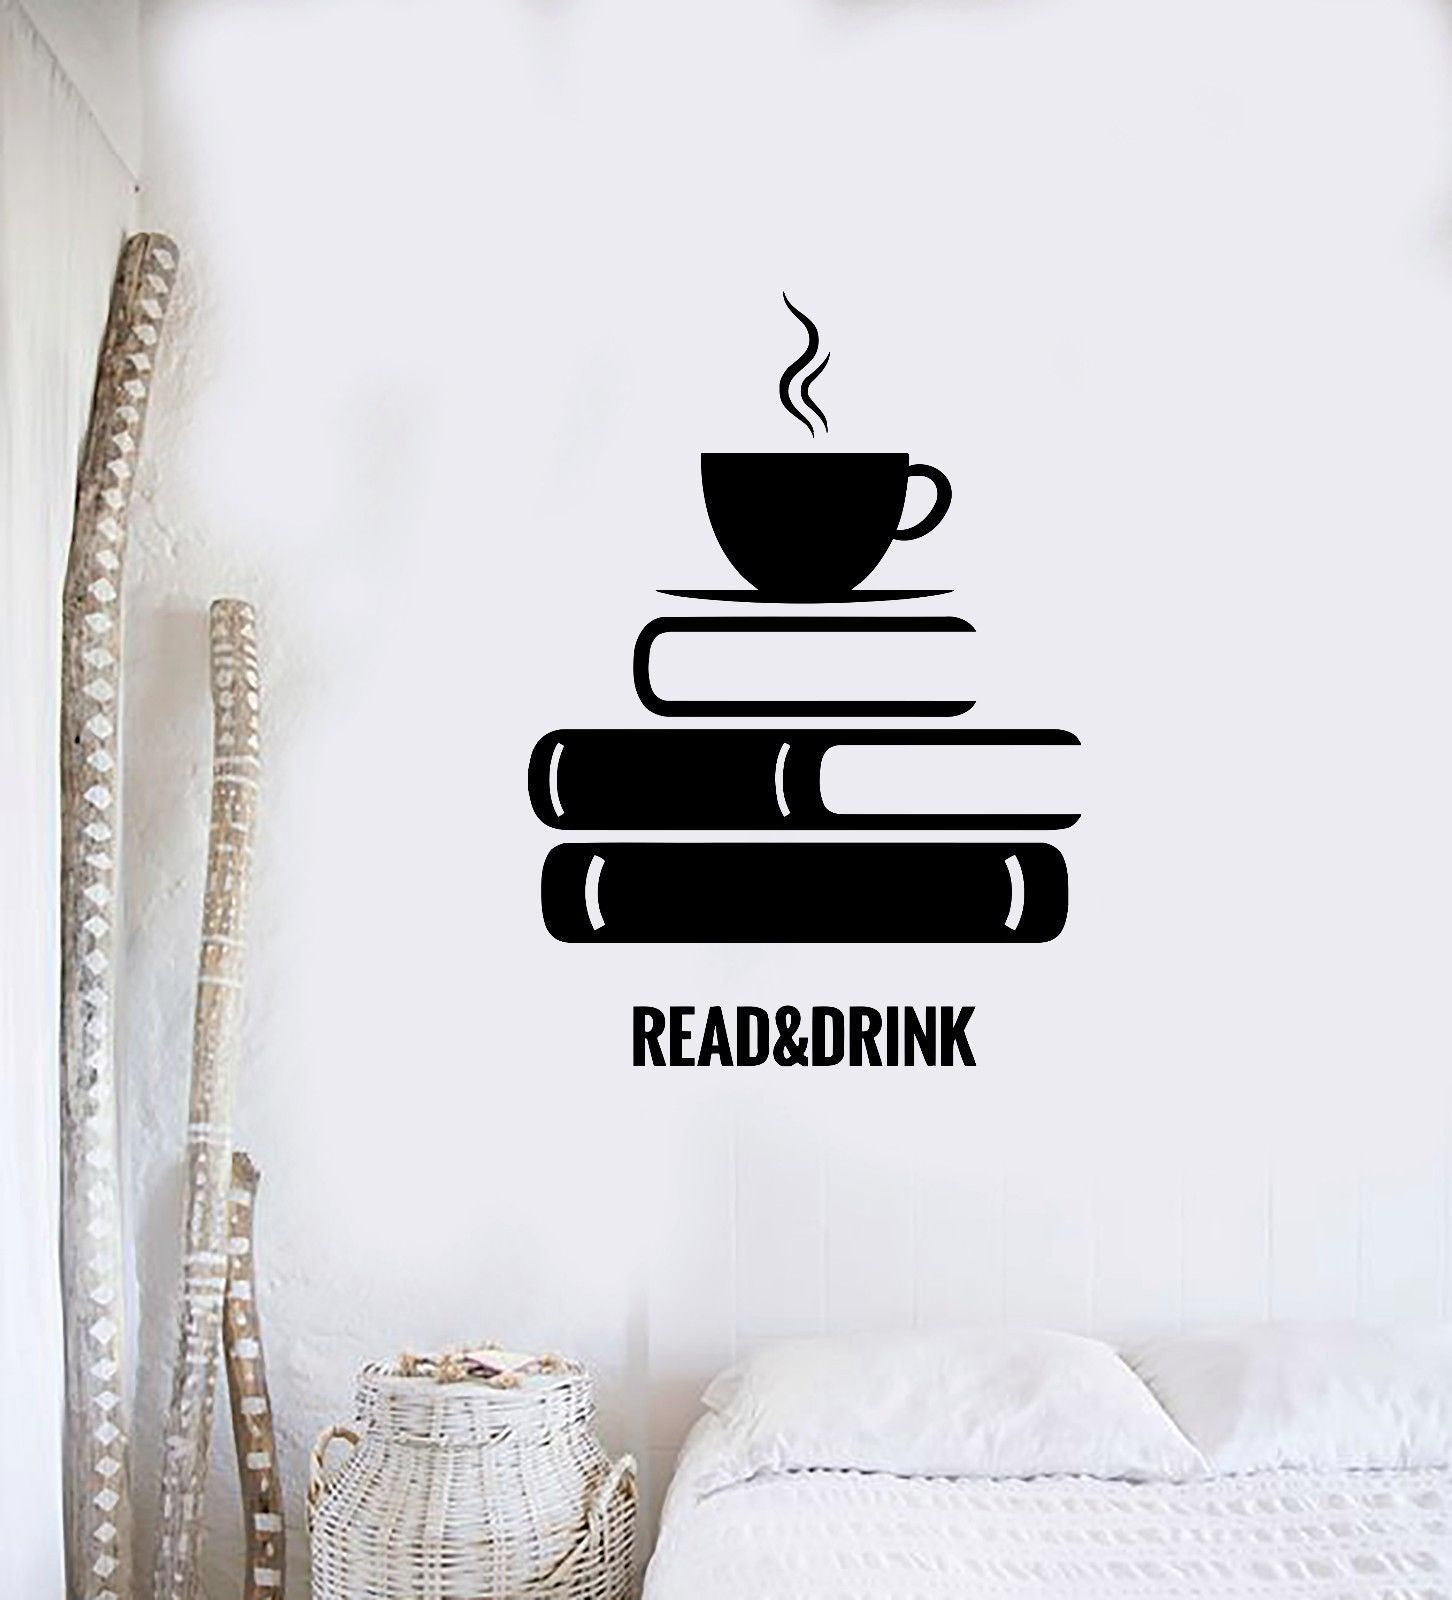 Cheap Mural Decoration Buy Quality Stickers Felt Directly From - Vinyl wall decals books